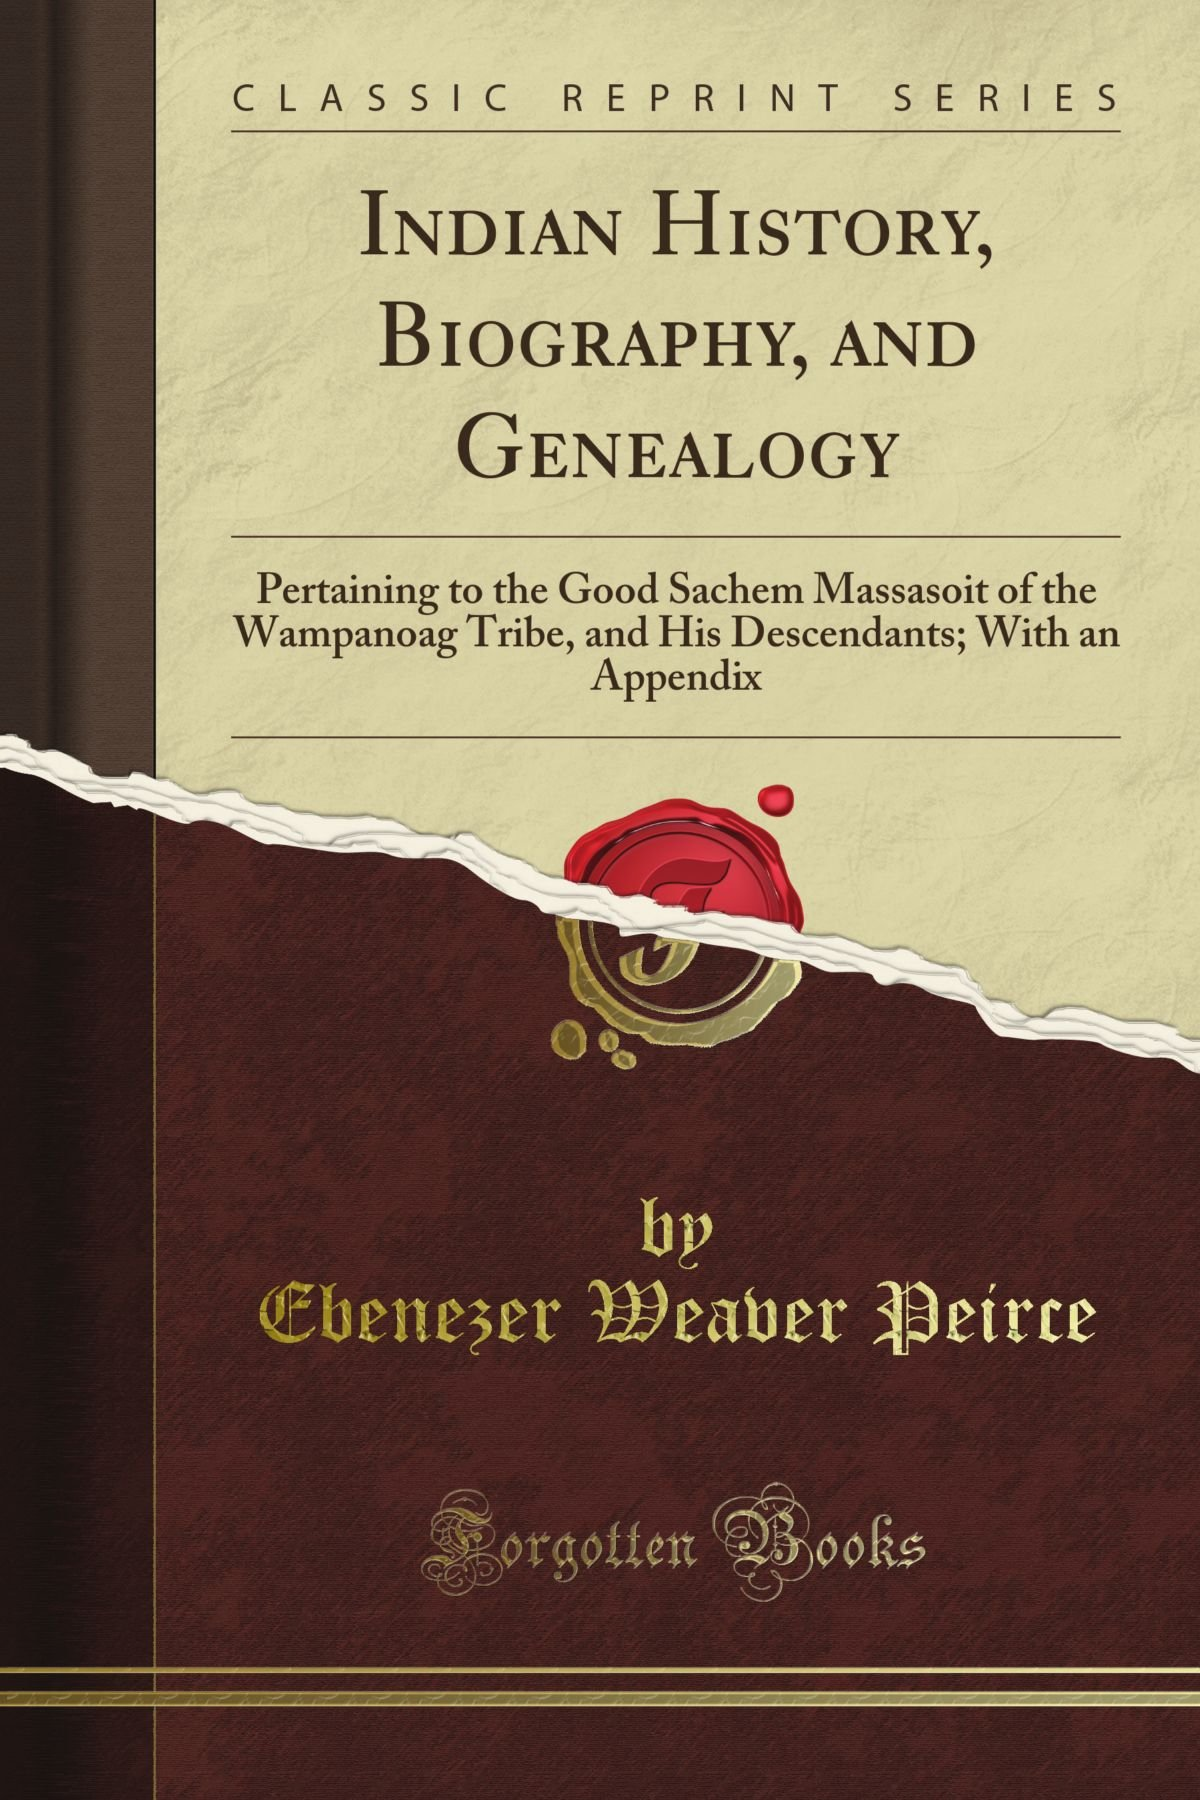 Indian History, Biography, and Genealogy: Pertaining to the Good Sachem Massasoit of the Wampanoag Tribe, and His Descendants; With an Appendix (Classic Reprint)